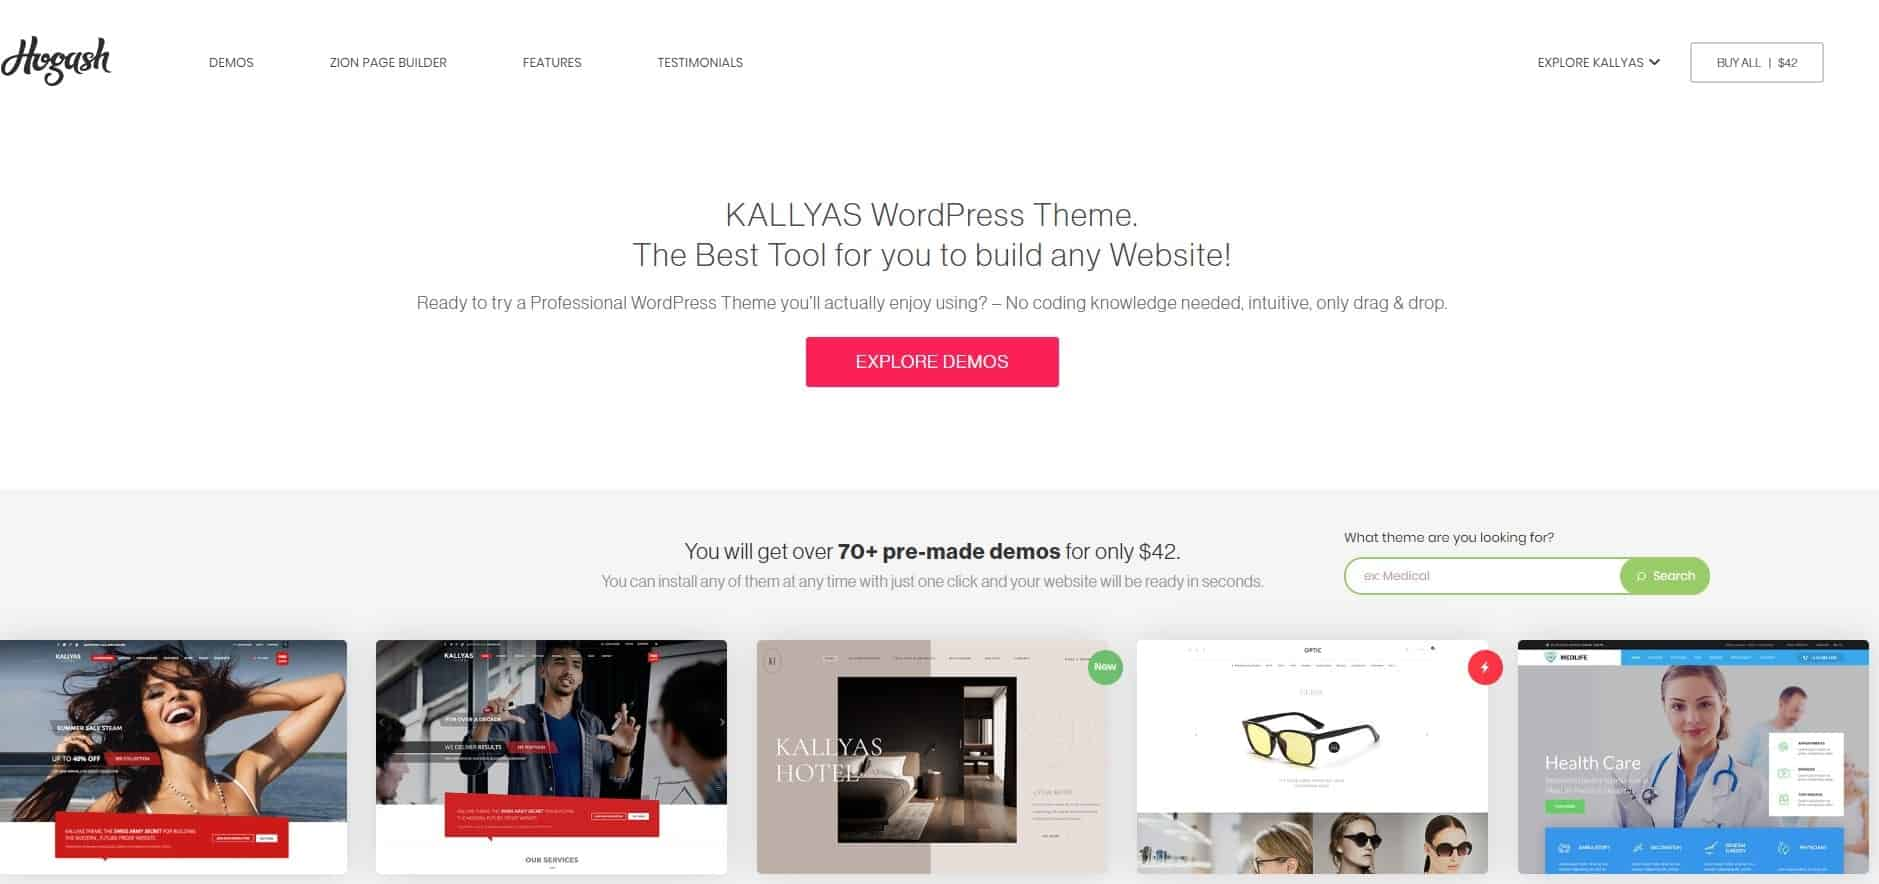 Kallyas Word Press Theme